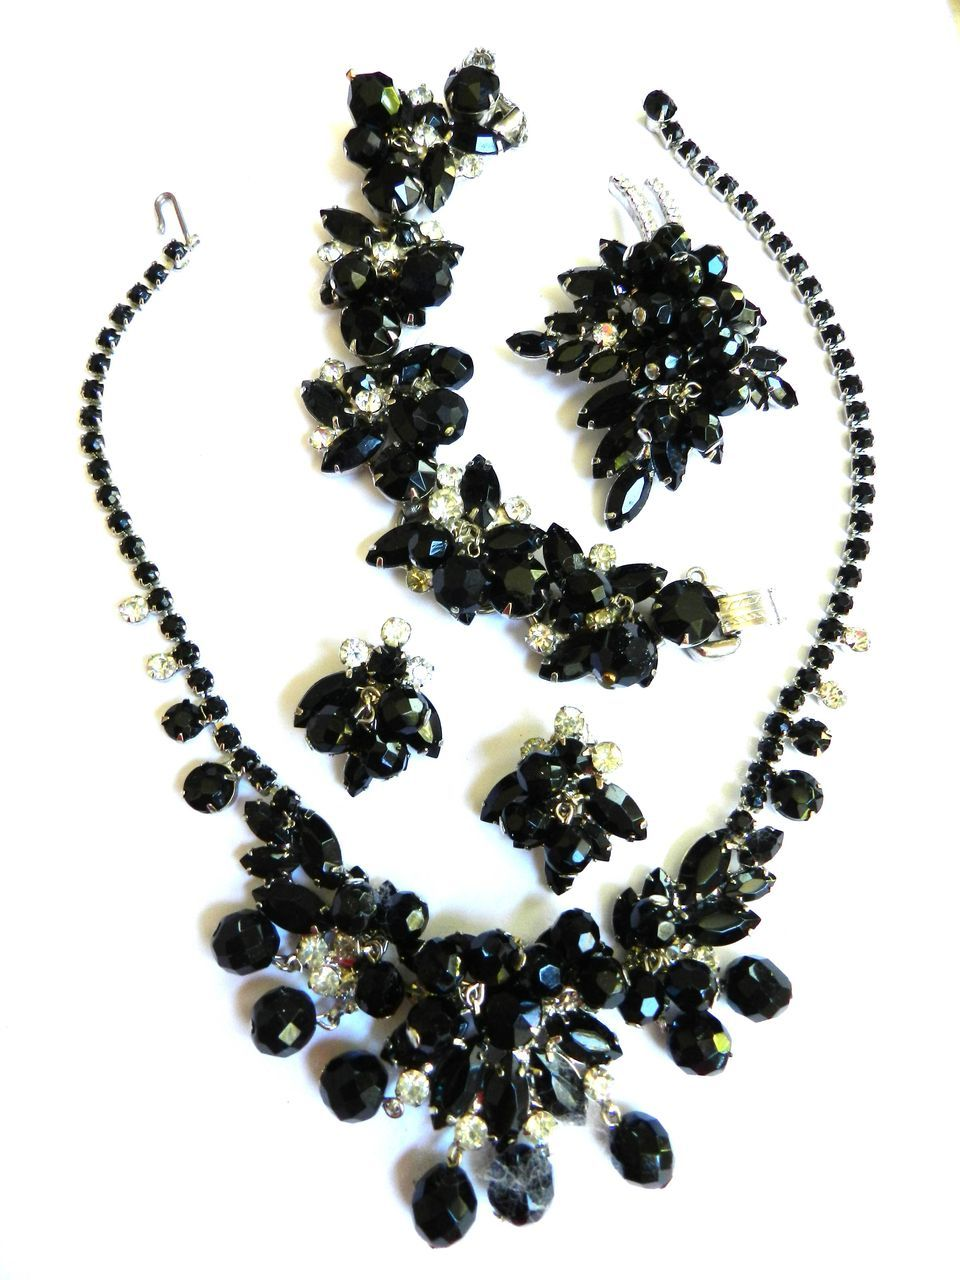 Black Tie Ready Vintage Juliana Jet Black Crystal Drippy Grand Parure